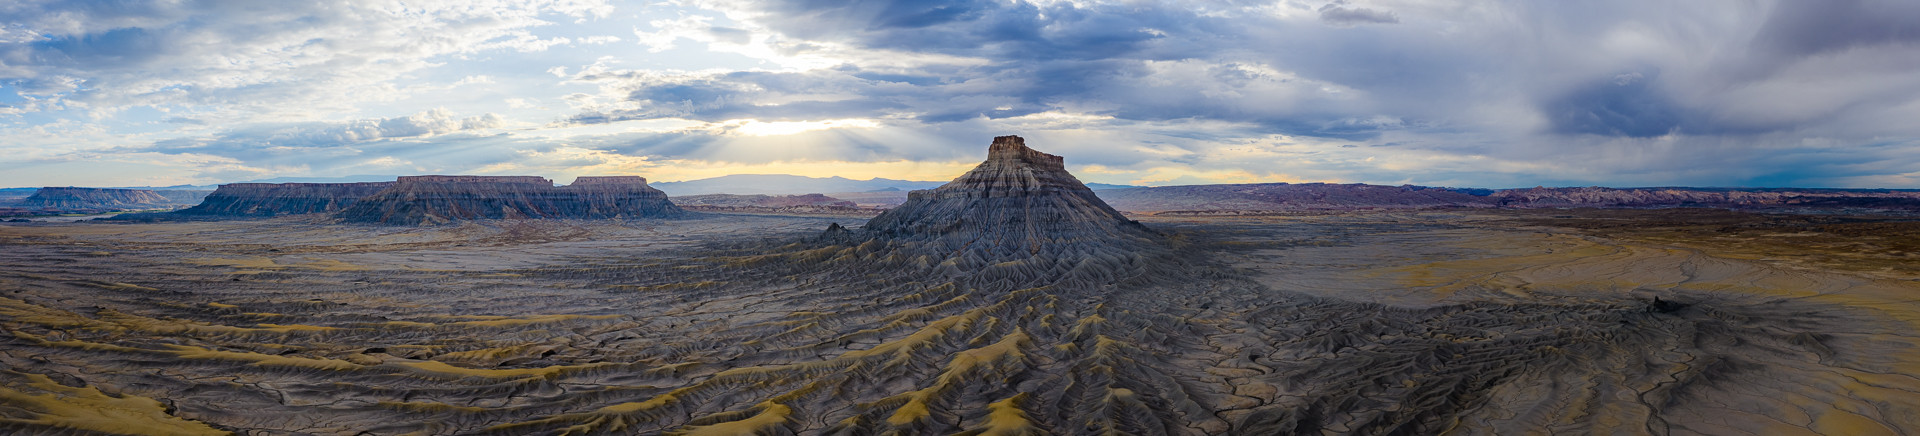 1st: Utah Badlands